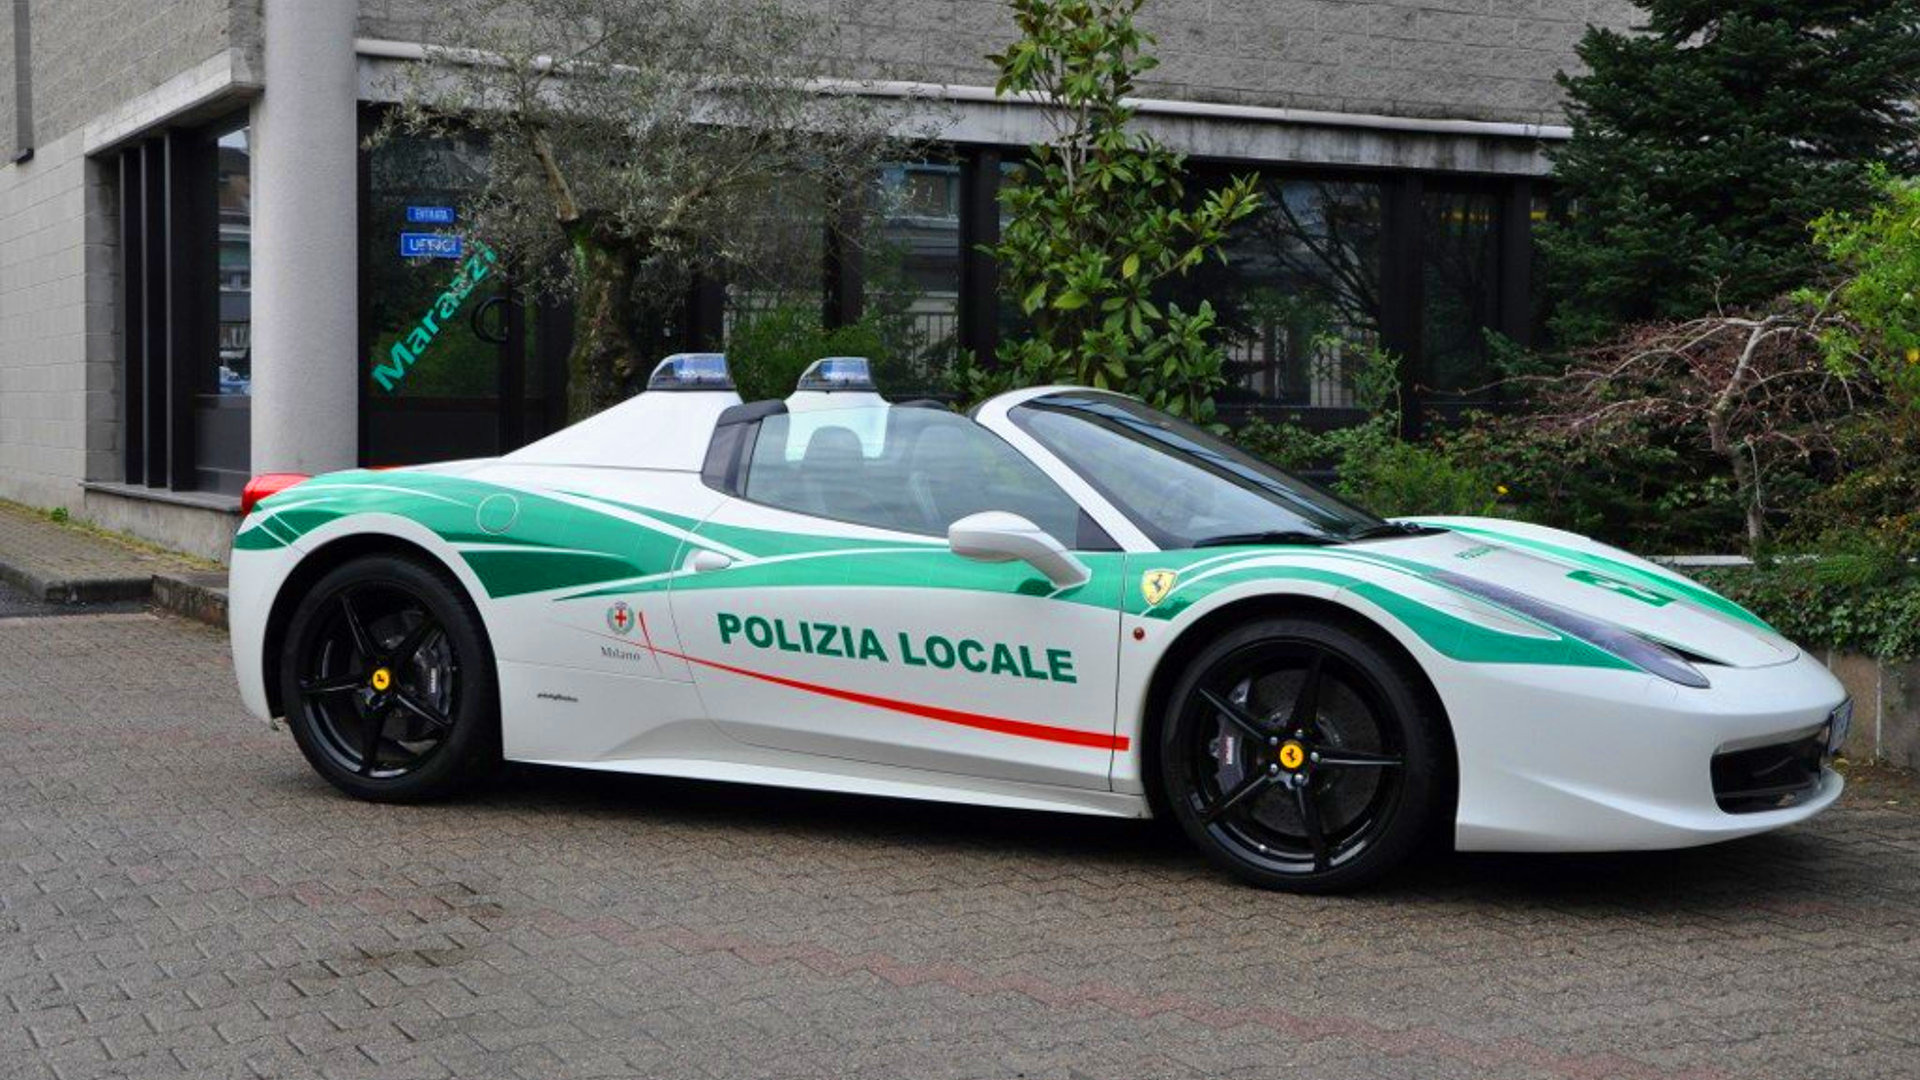 Mafia S Confiscated Ferrari 458 Turned Into Police Car